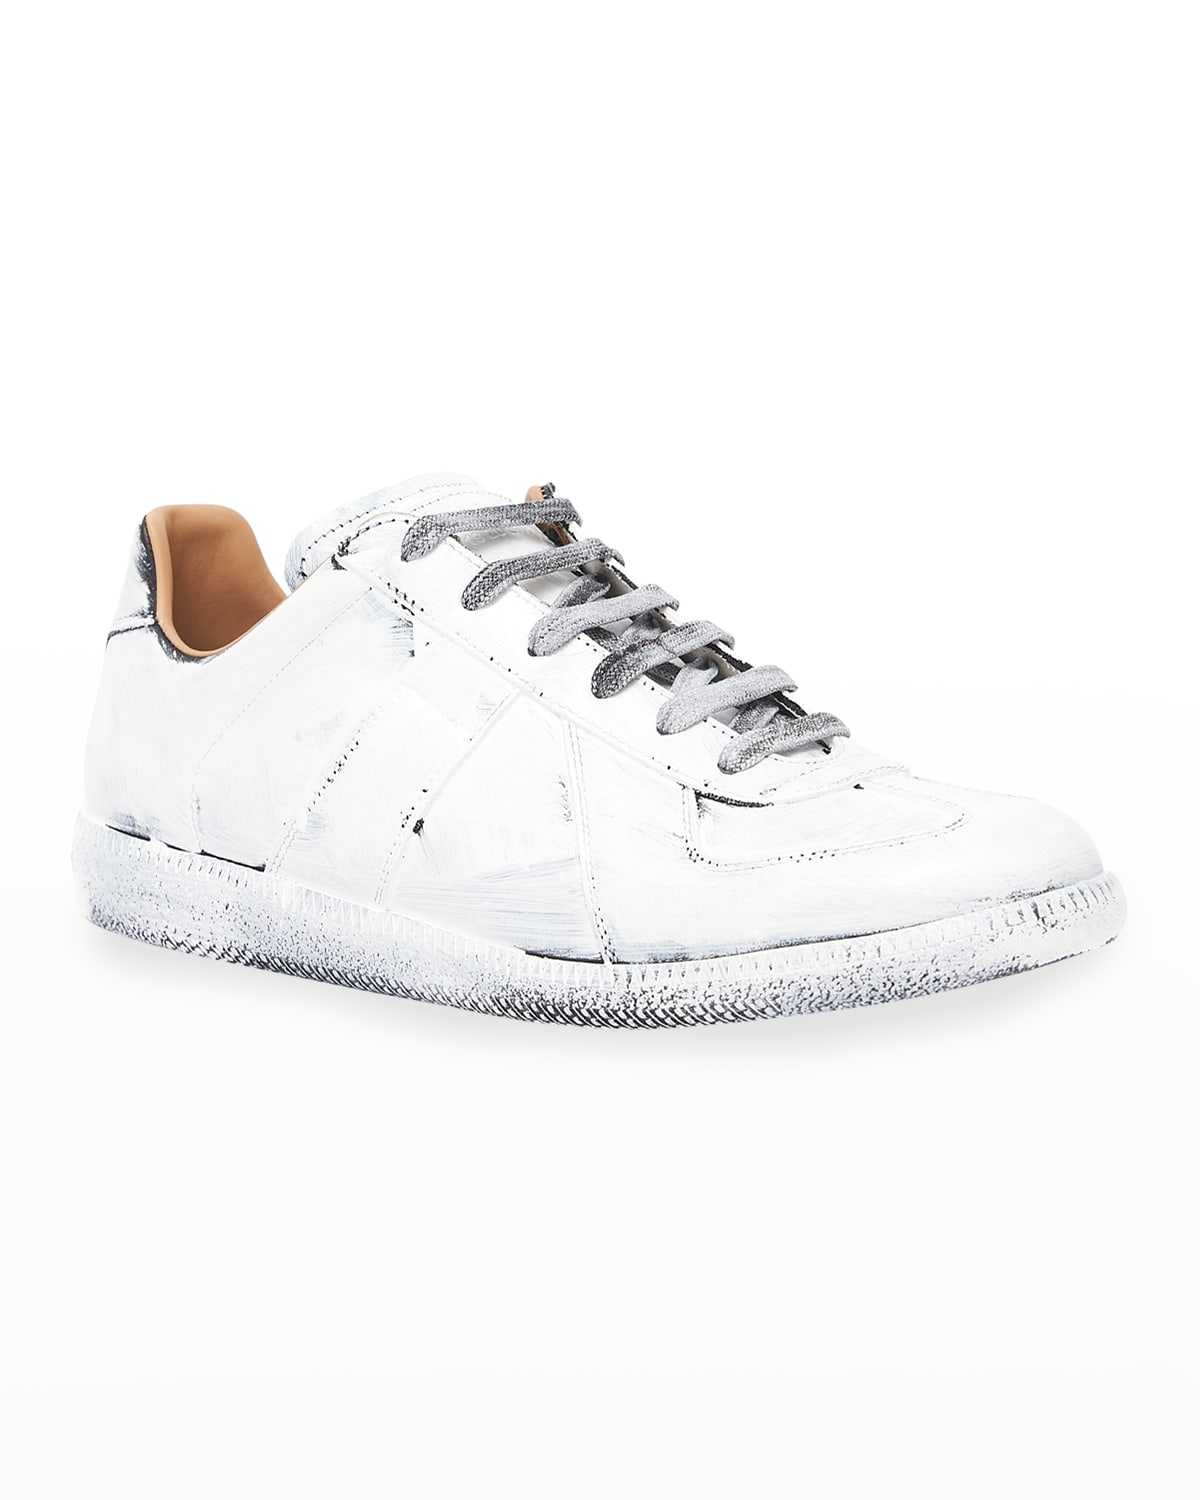 Men's Replica Bianchetto Hand-Painted Sneakers